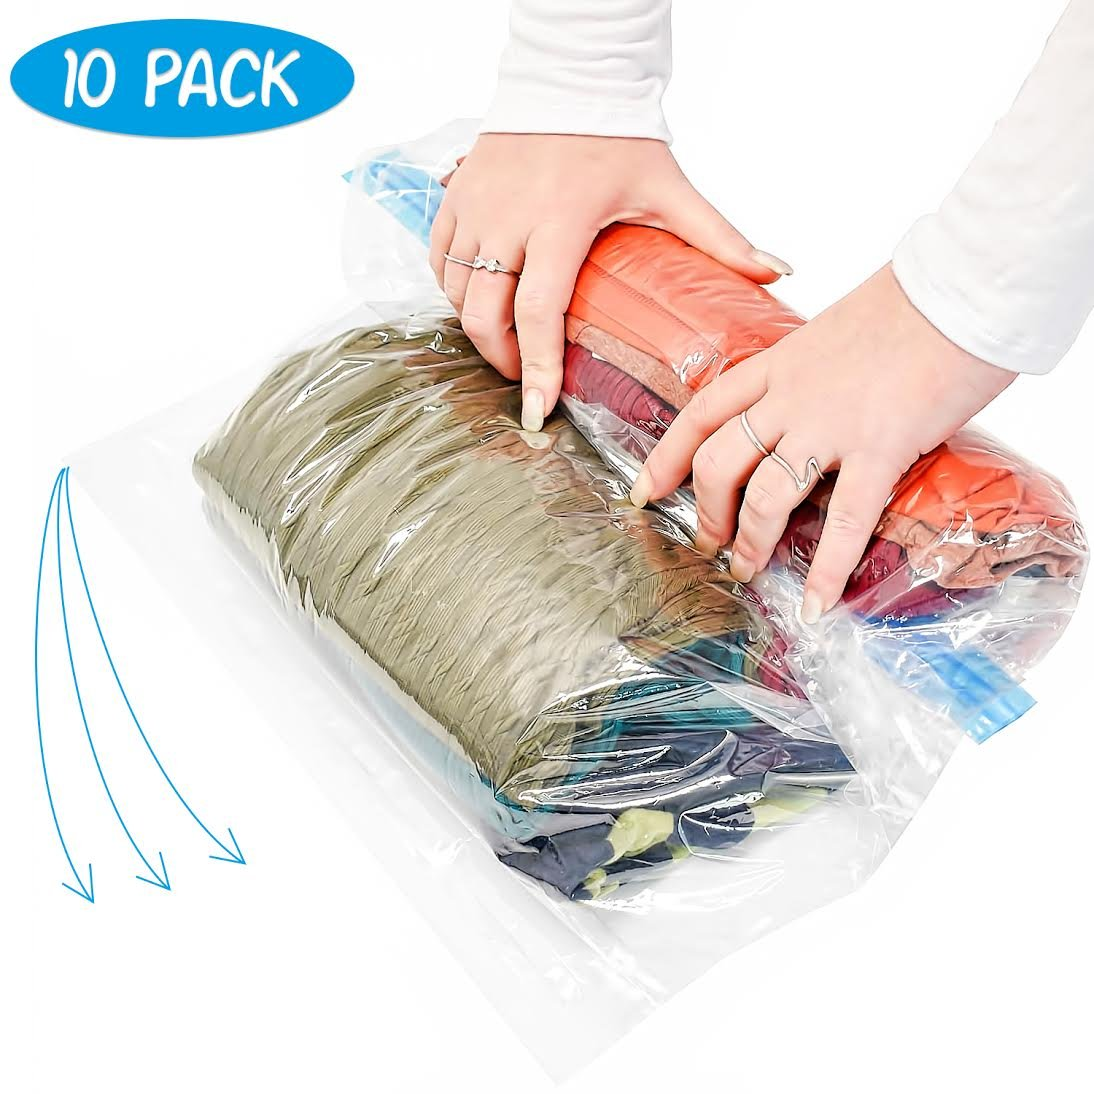 10 Large Rolling Compression Bags for Saving Space When Packing & Storing Clothes. No Need for Pump just Roll & Save 80% Luggage Space. for Flights, Travels, Camping. Double Zipper. 100% Waterproof Vacuum Storage Bags Space Saving Travel Bags